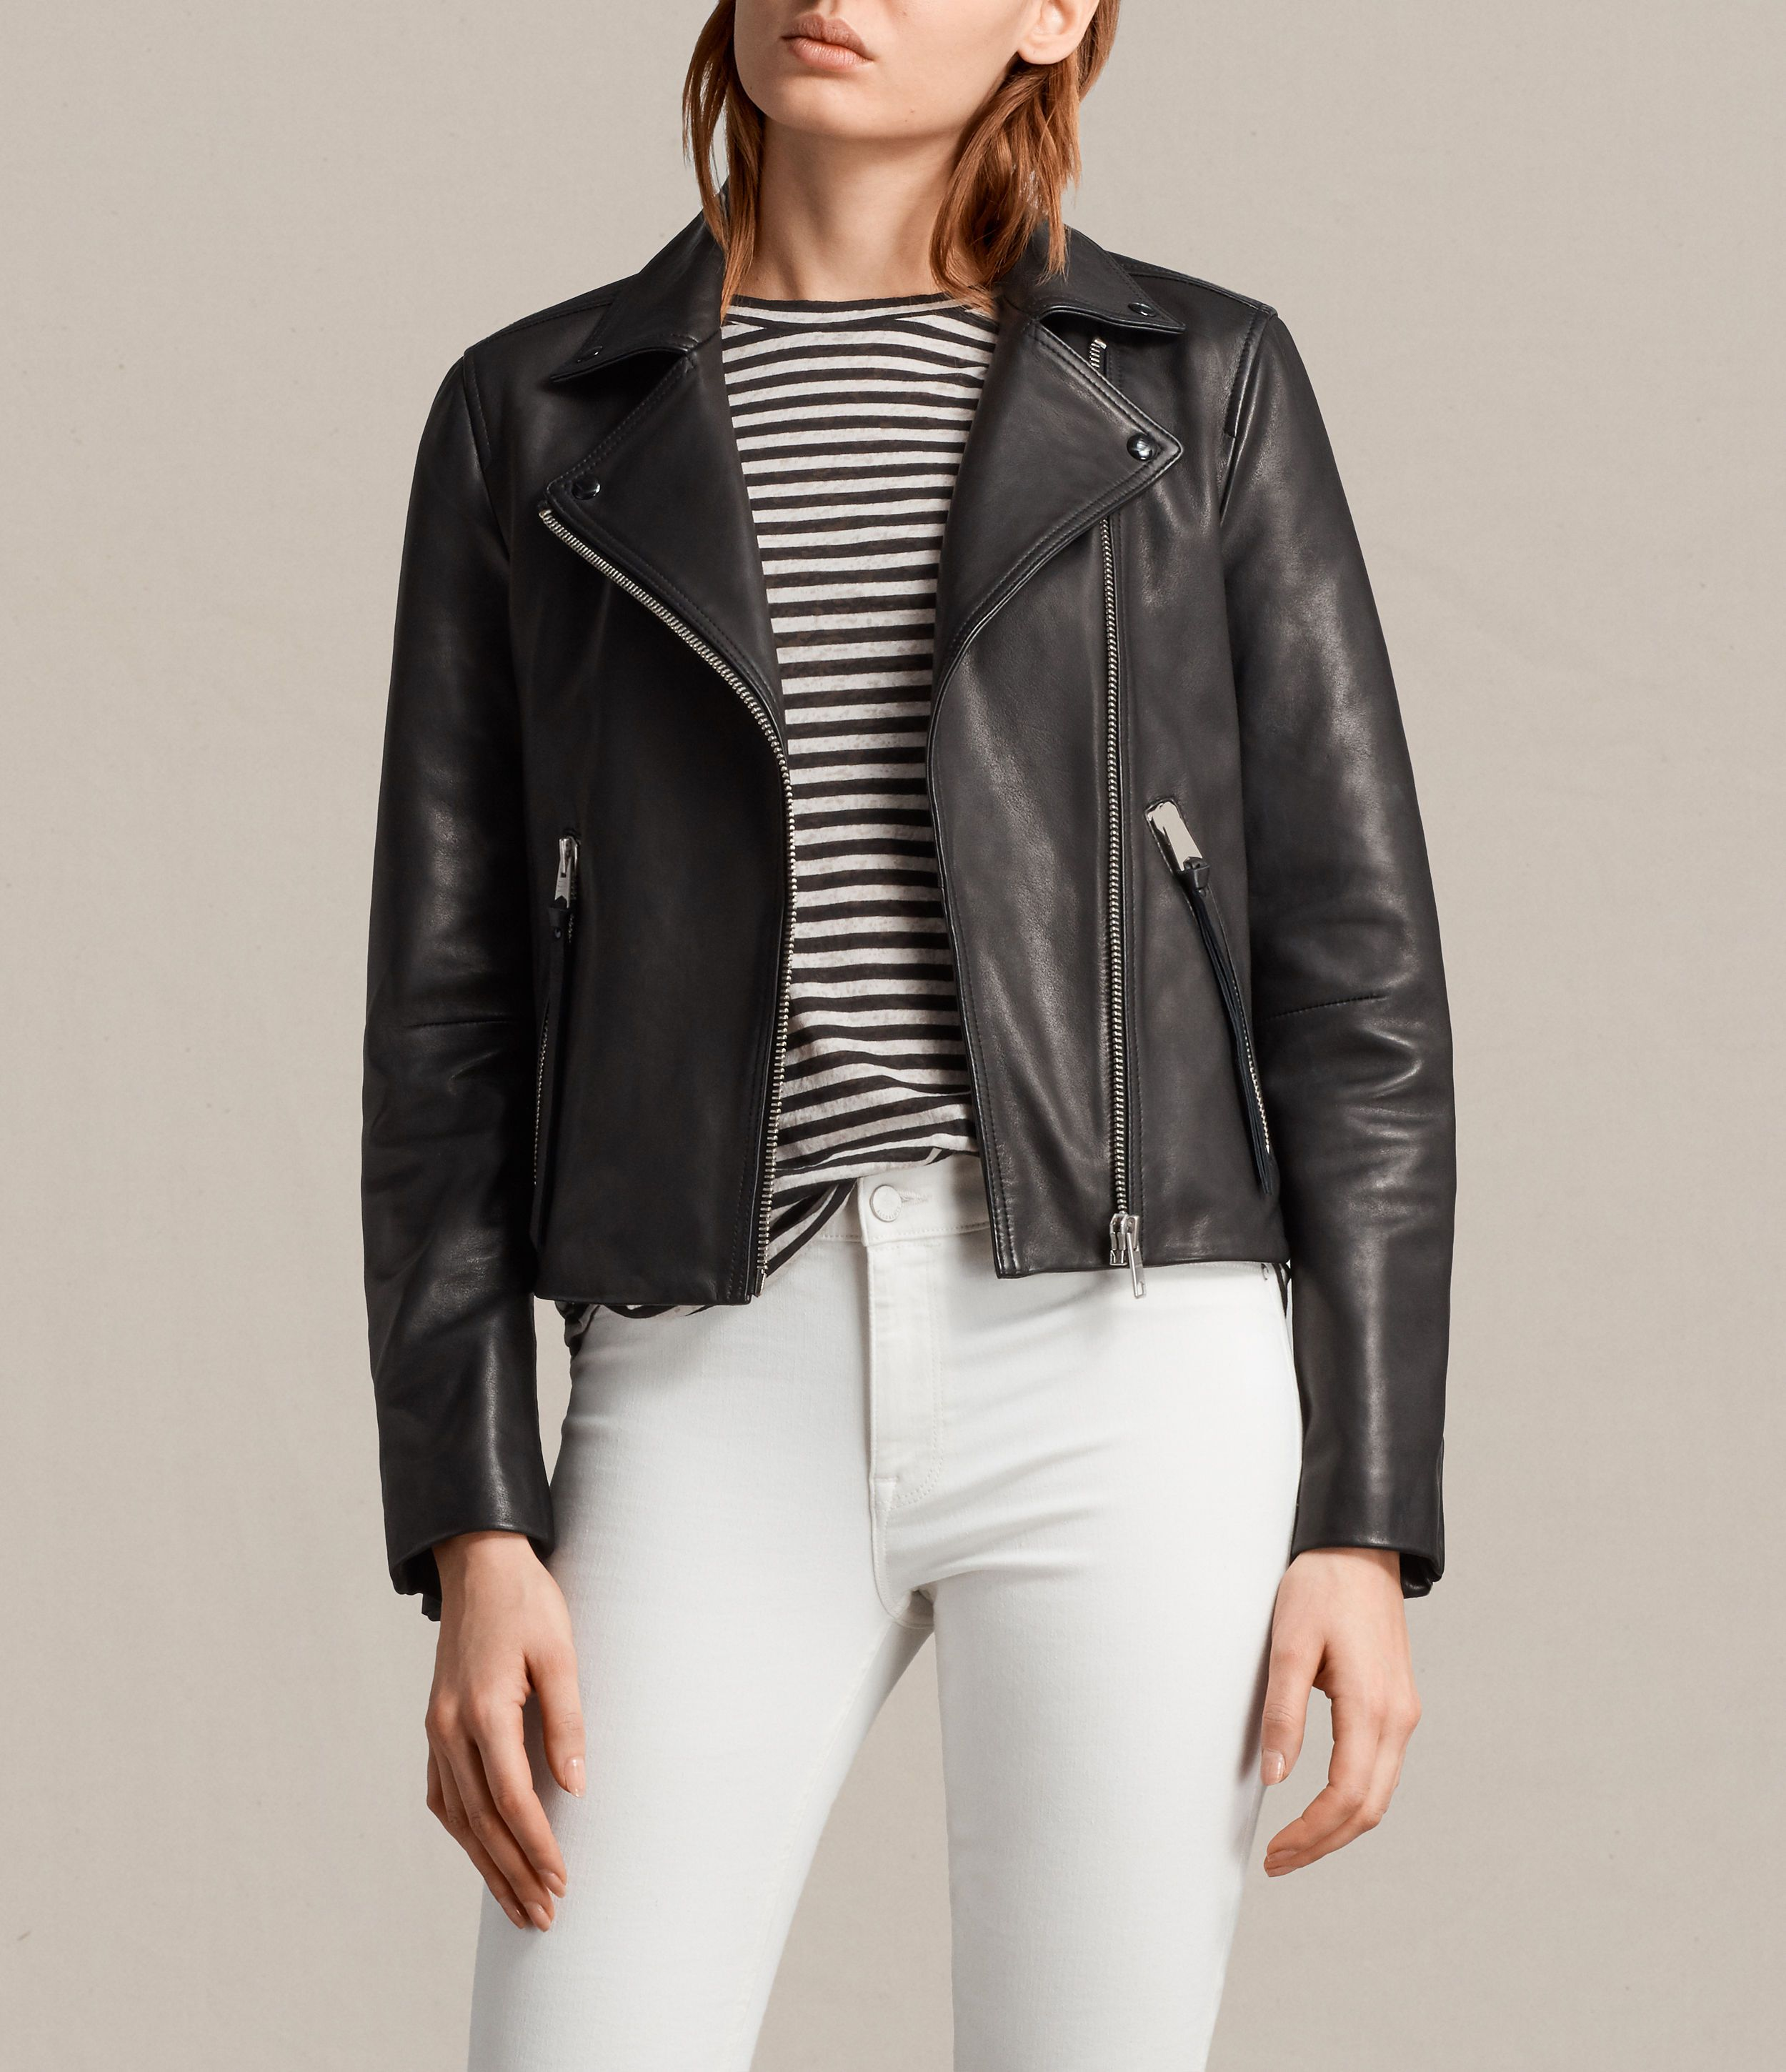 Dalby Leather Biker Jacket Womens biker jacket, Leather